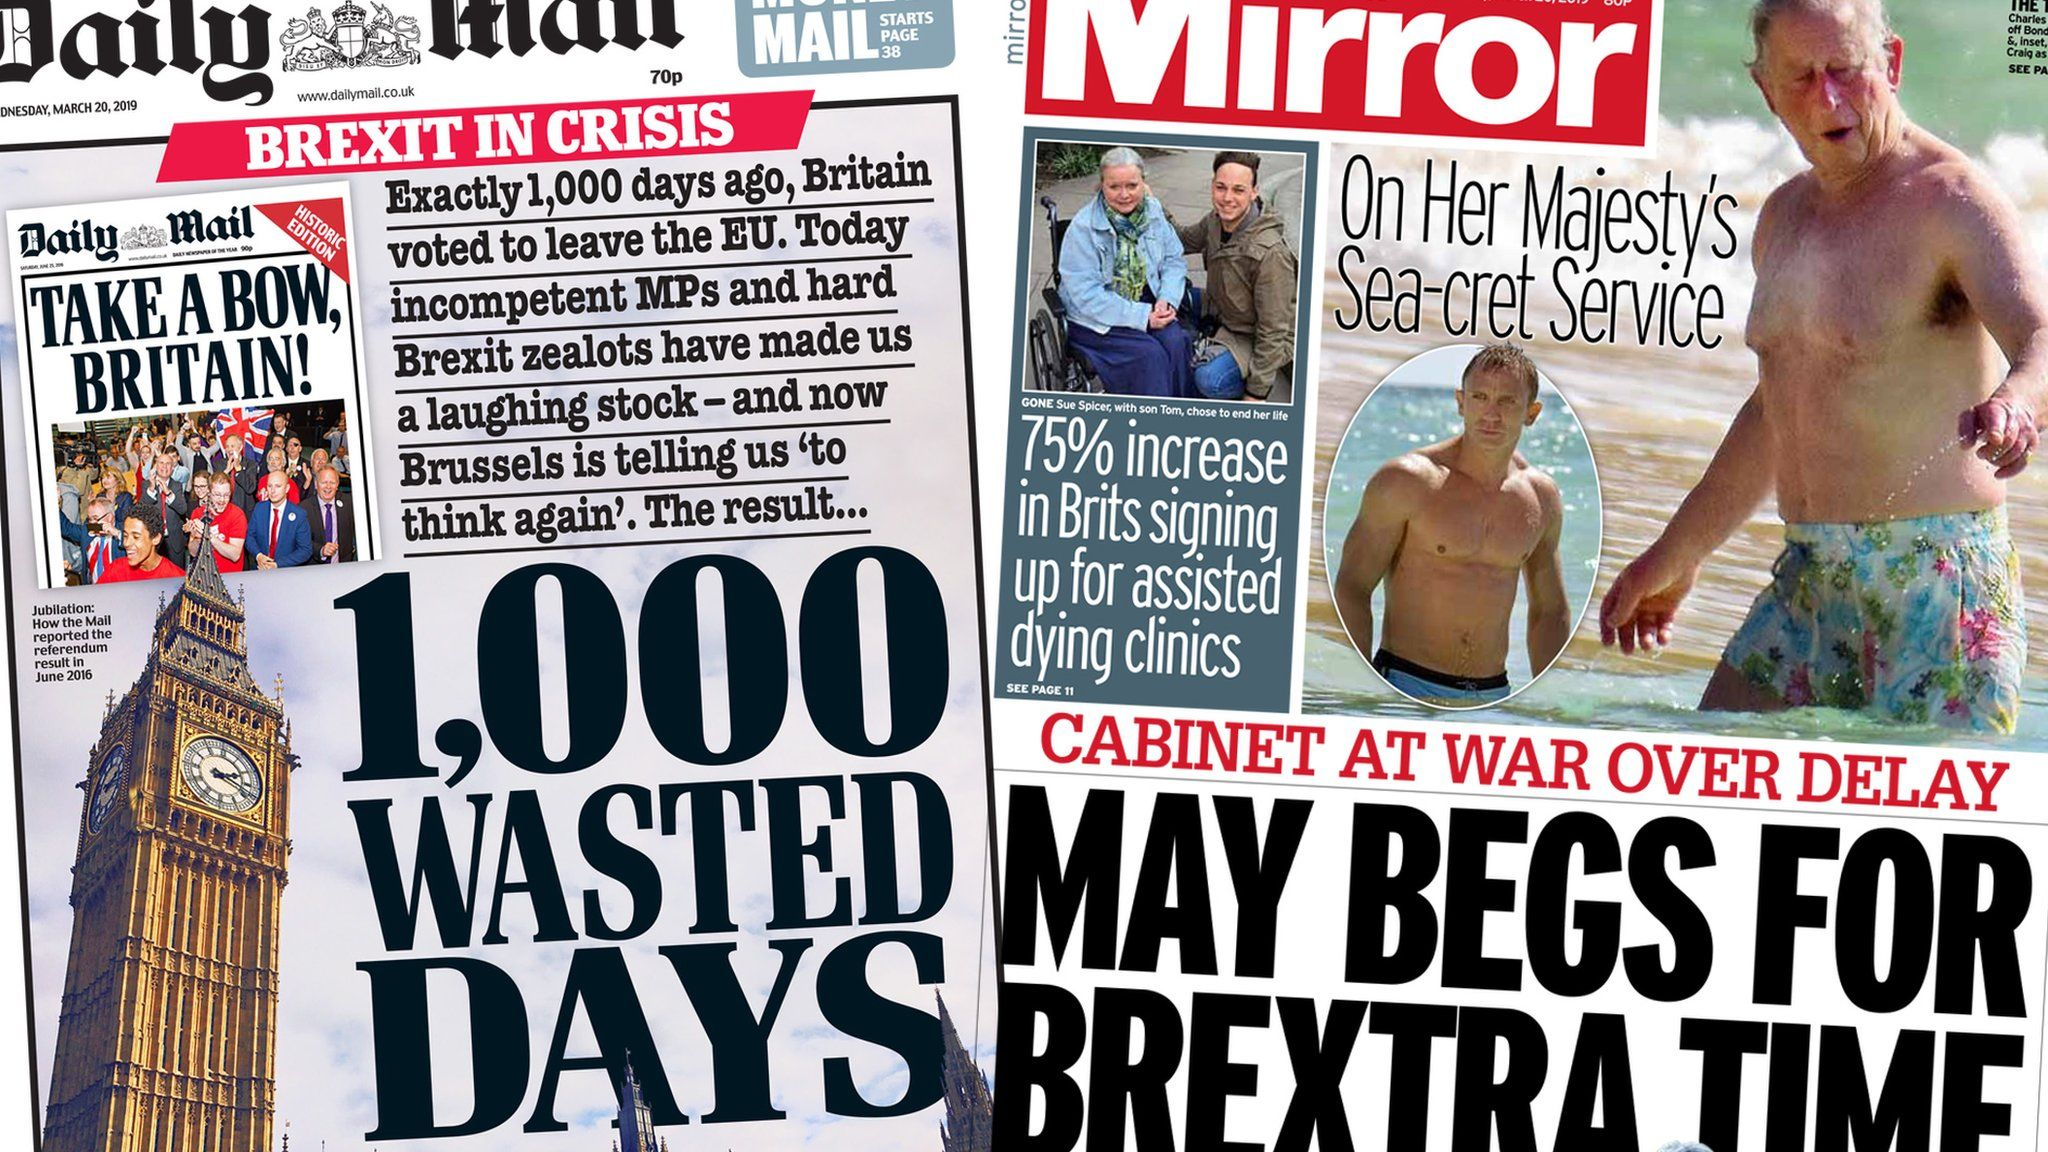 The Daily Mail and Mirror Wednesday 20 March